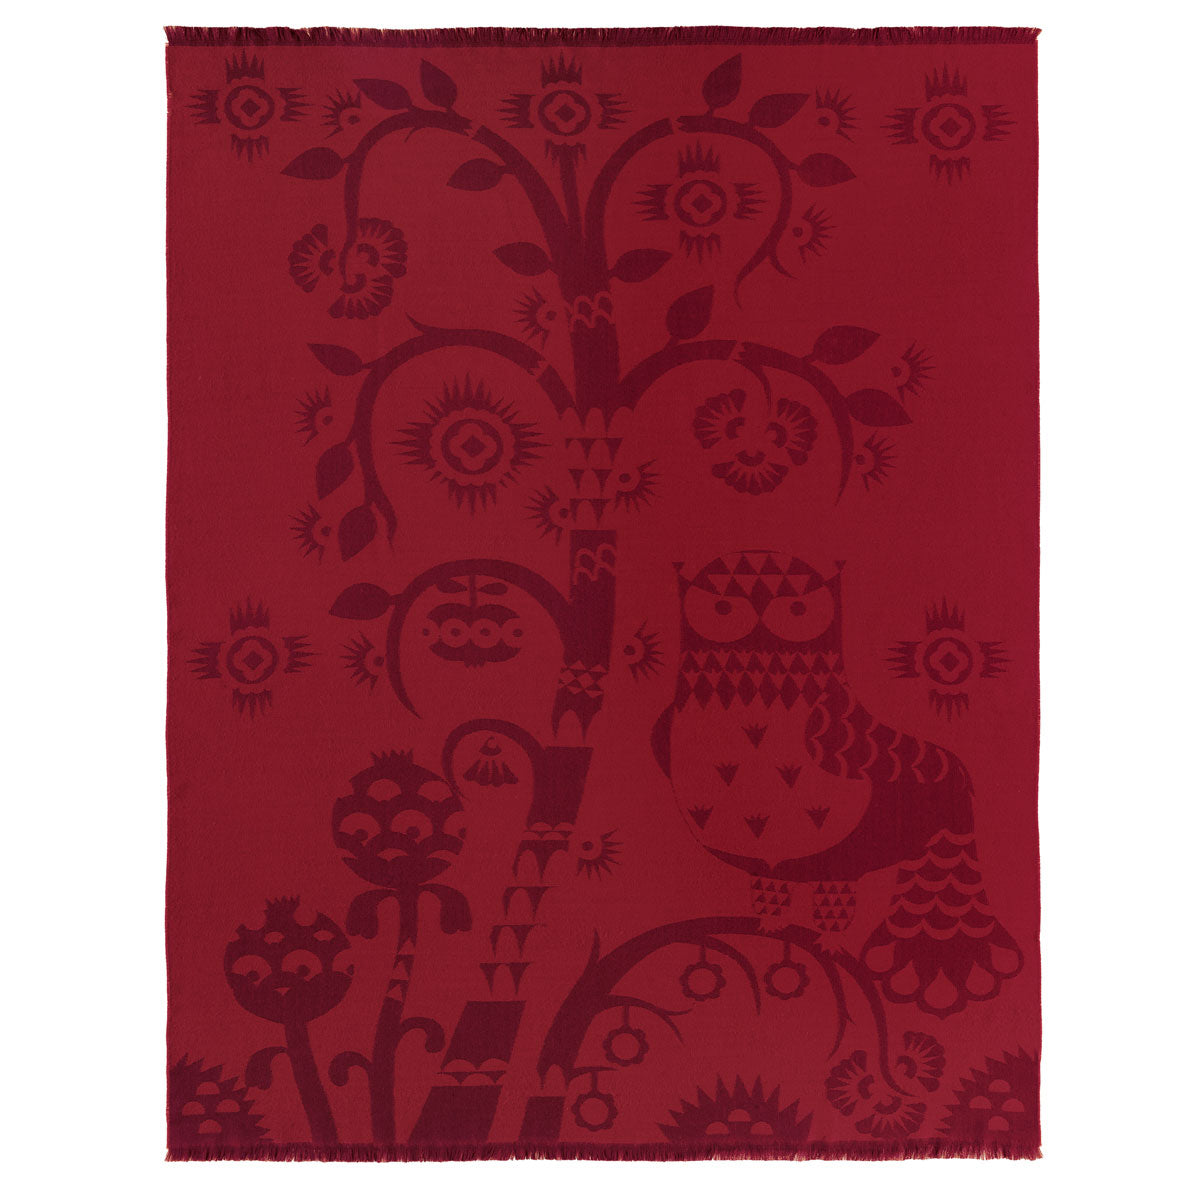 iittala blanket Taika red merino wool